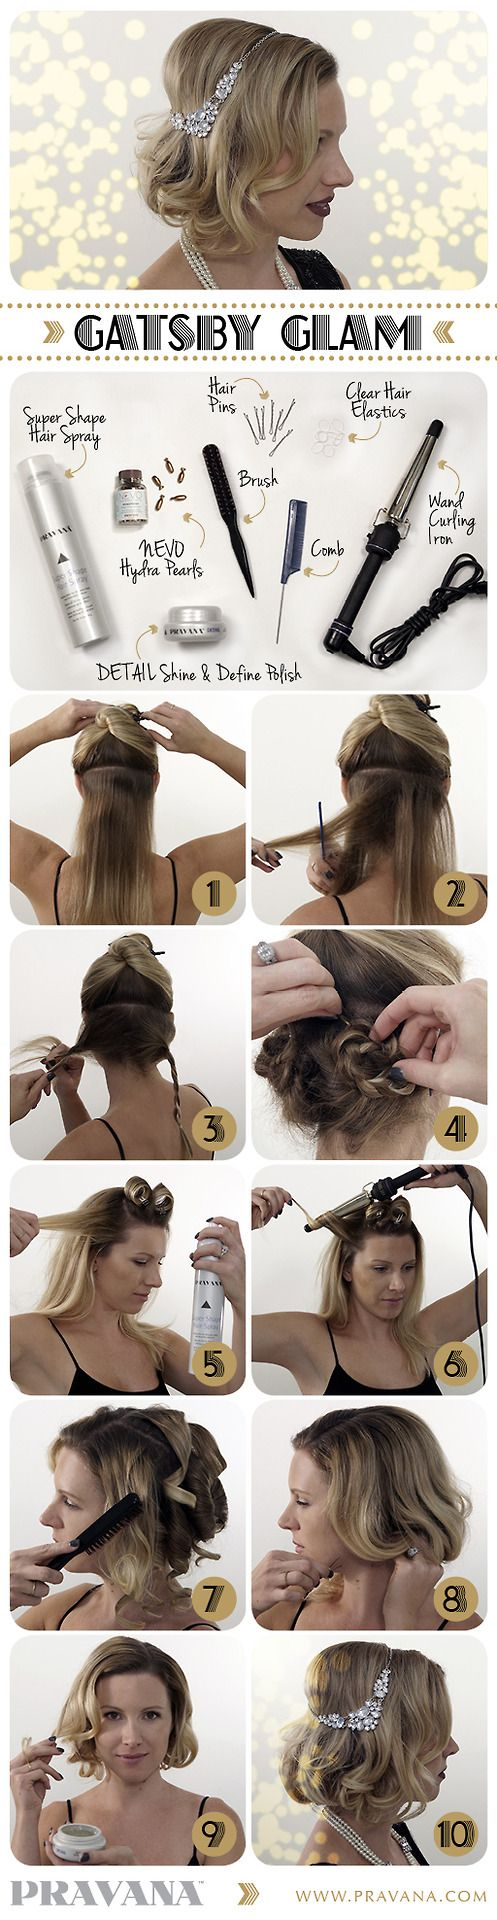 Gatsby Glam! Hair ideas for Mixology Night on December 6 with Templeton